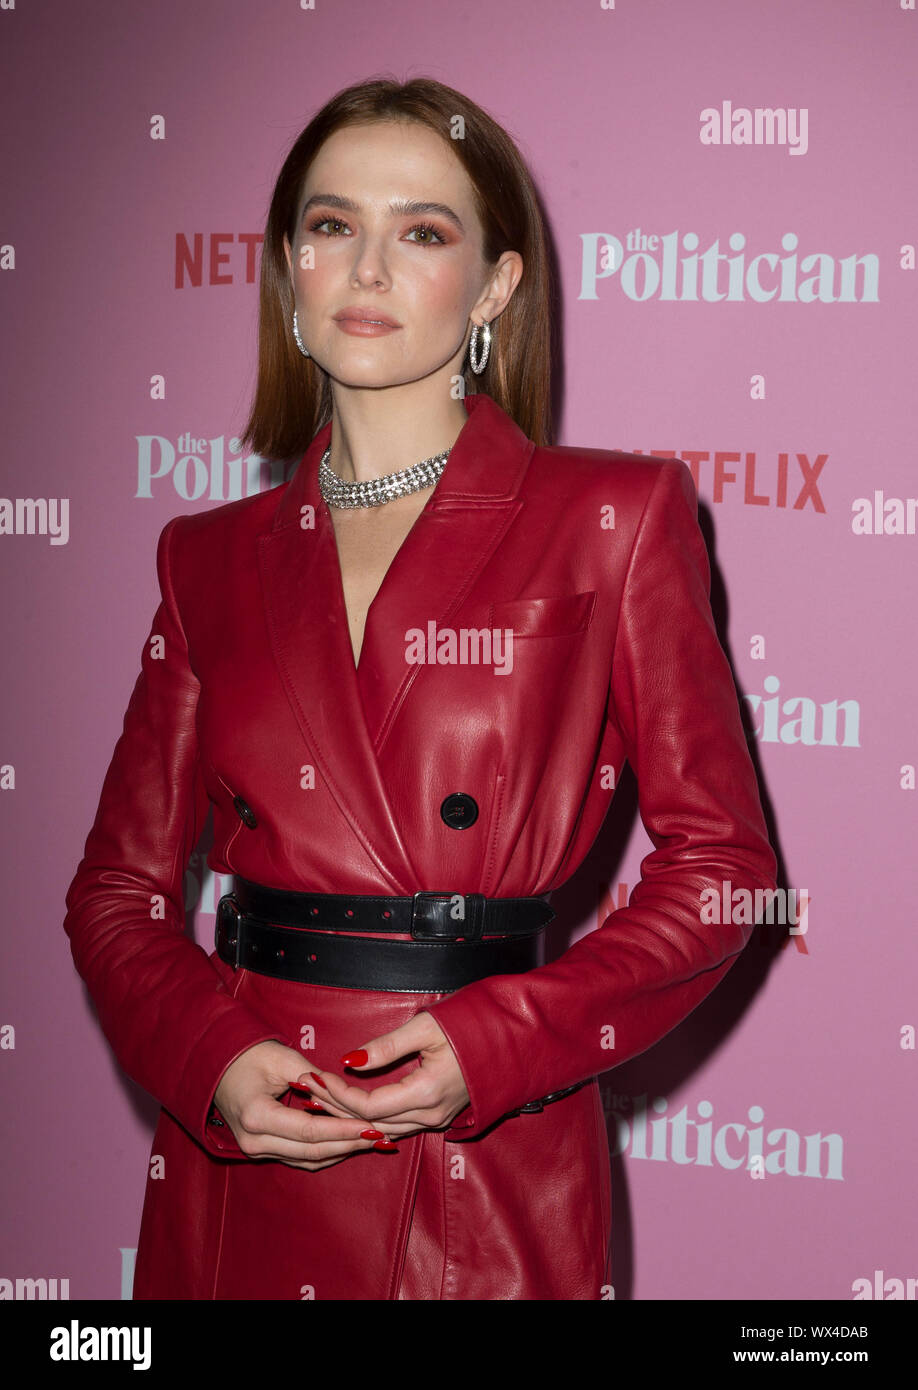 Zoey Deutch Attending A Special Screening Of Netflix S The